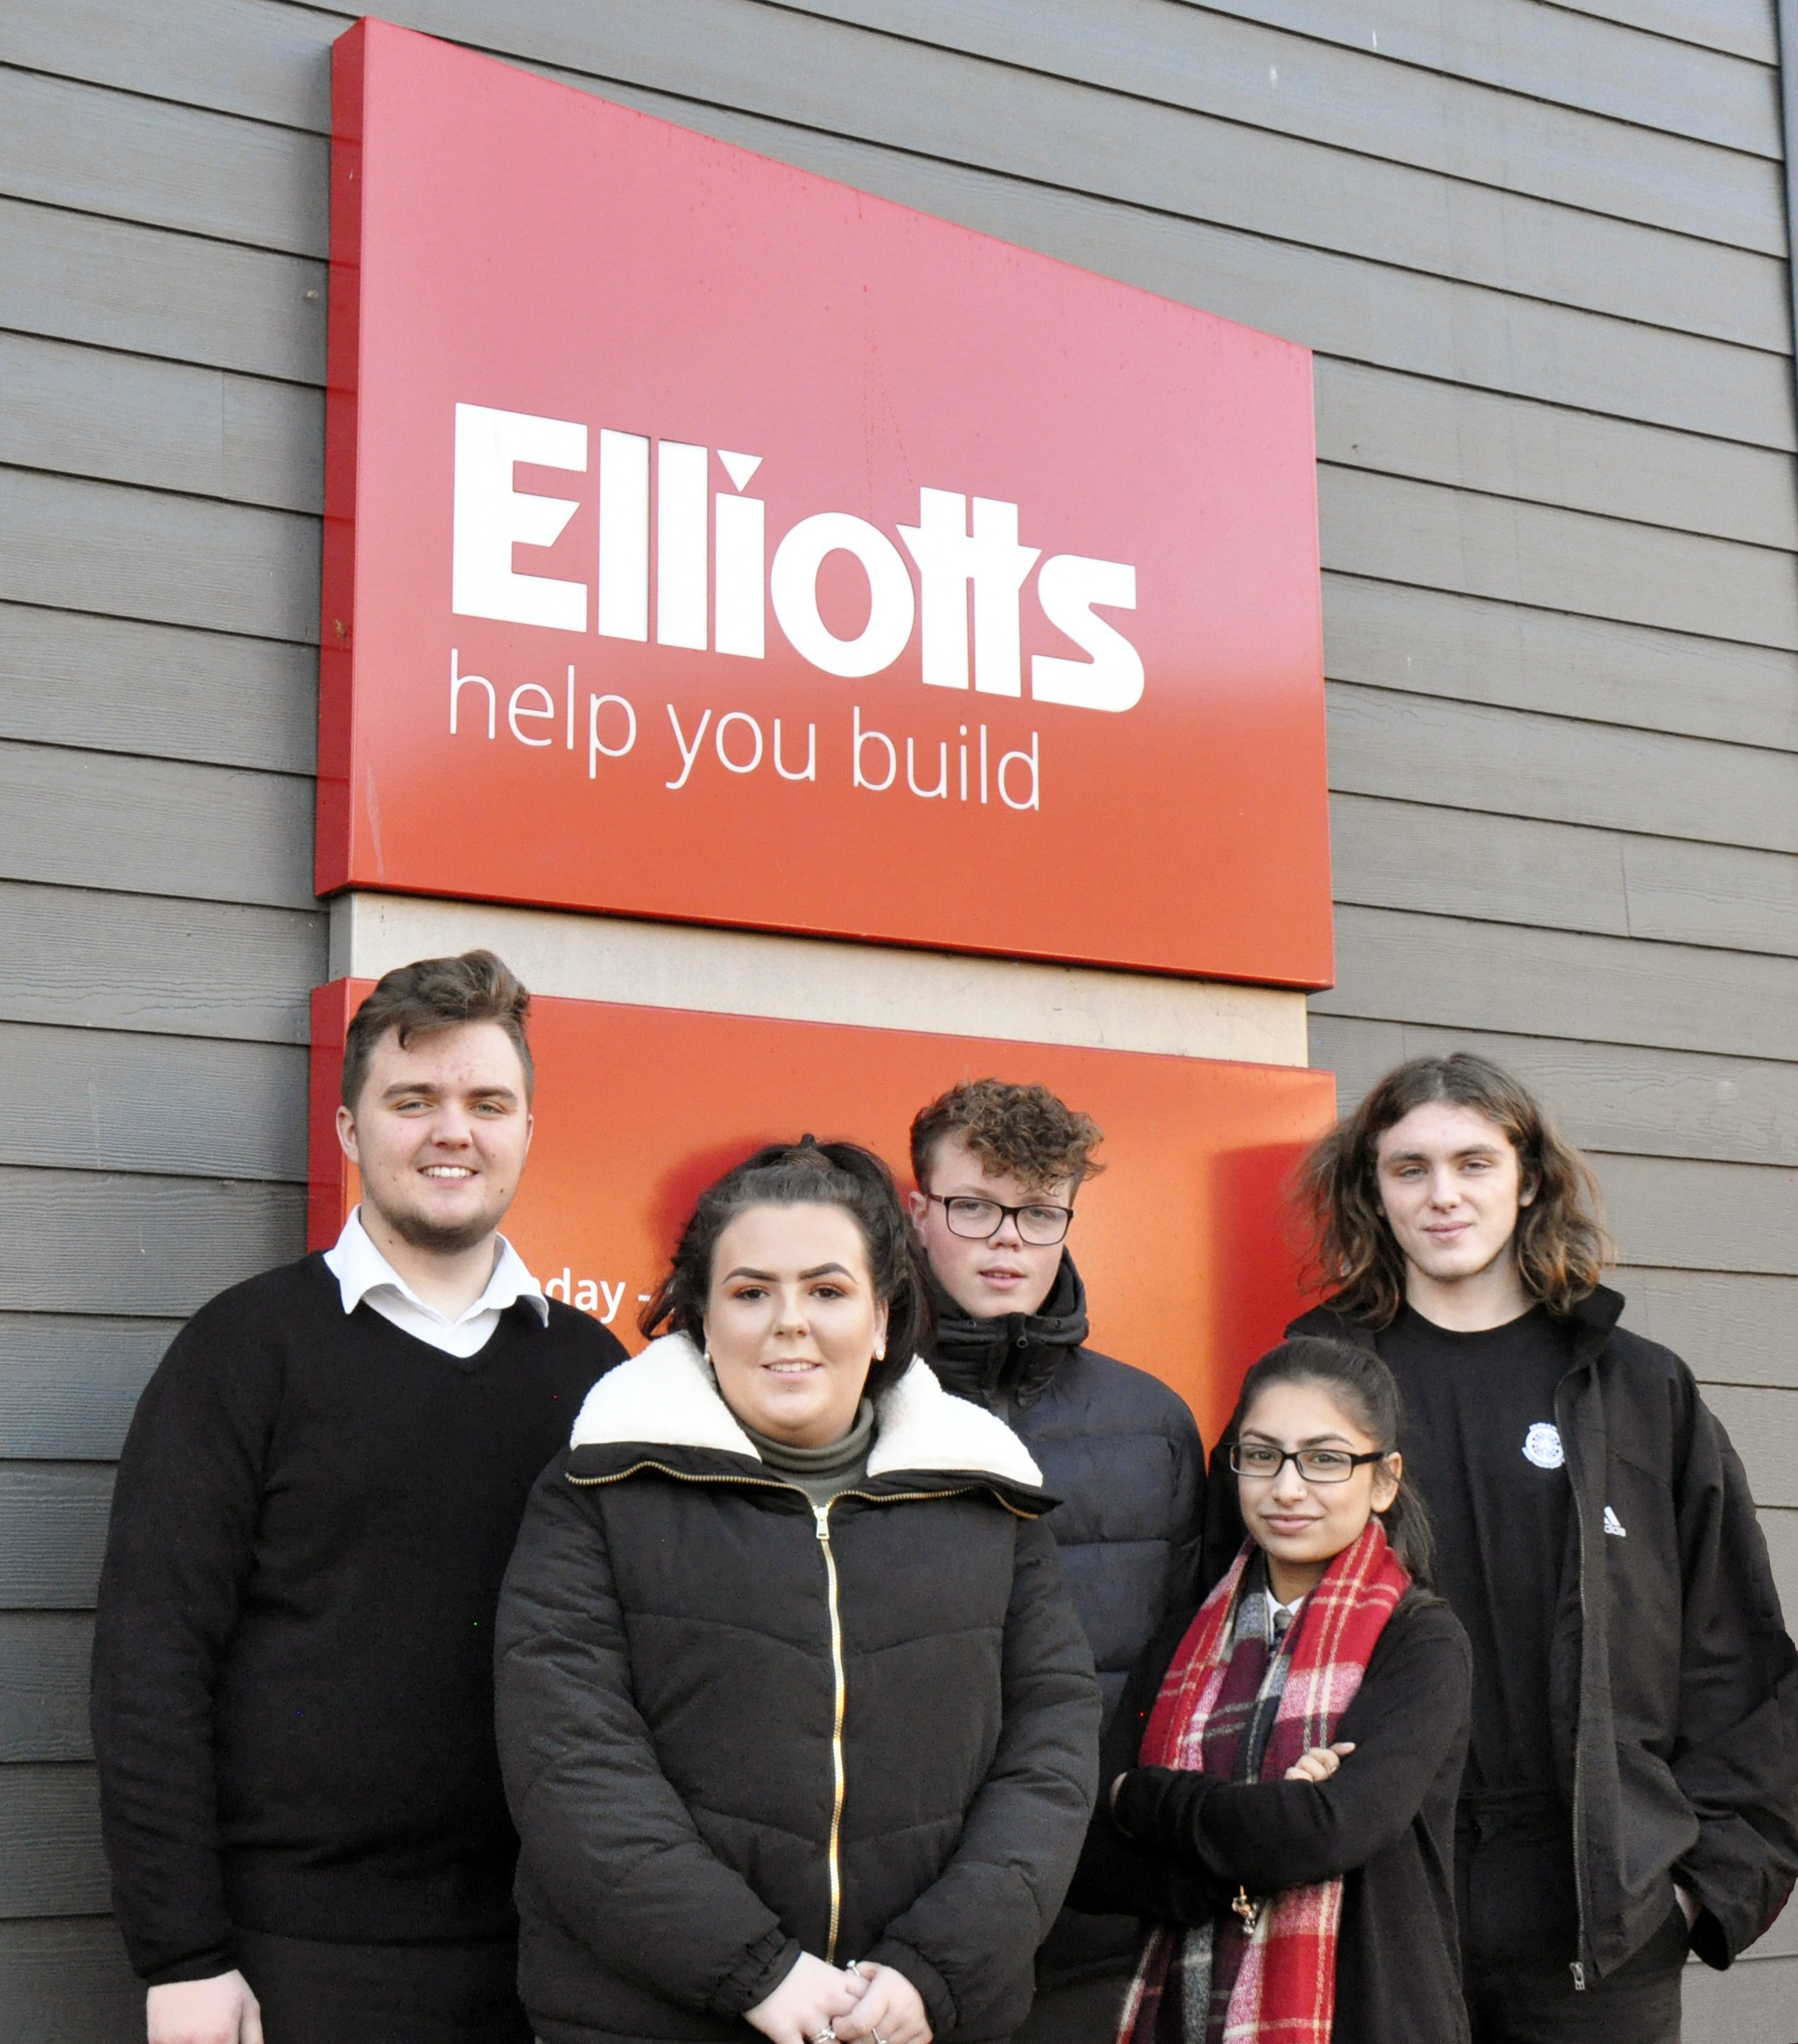 5 of the 6 new apprentices, from left to right Jack Arnold – Ringwood & Fordingbridge, Mollie Oram – Tadley, Jack Bailey – Southampton, Karamjit Potiwal – Southampton Sales Hub and Calum Budge